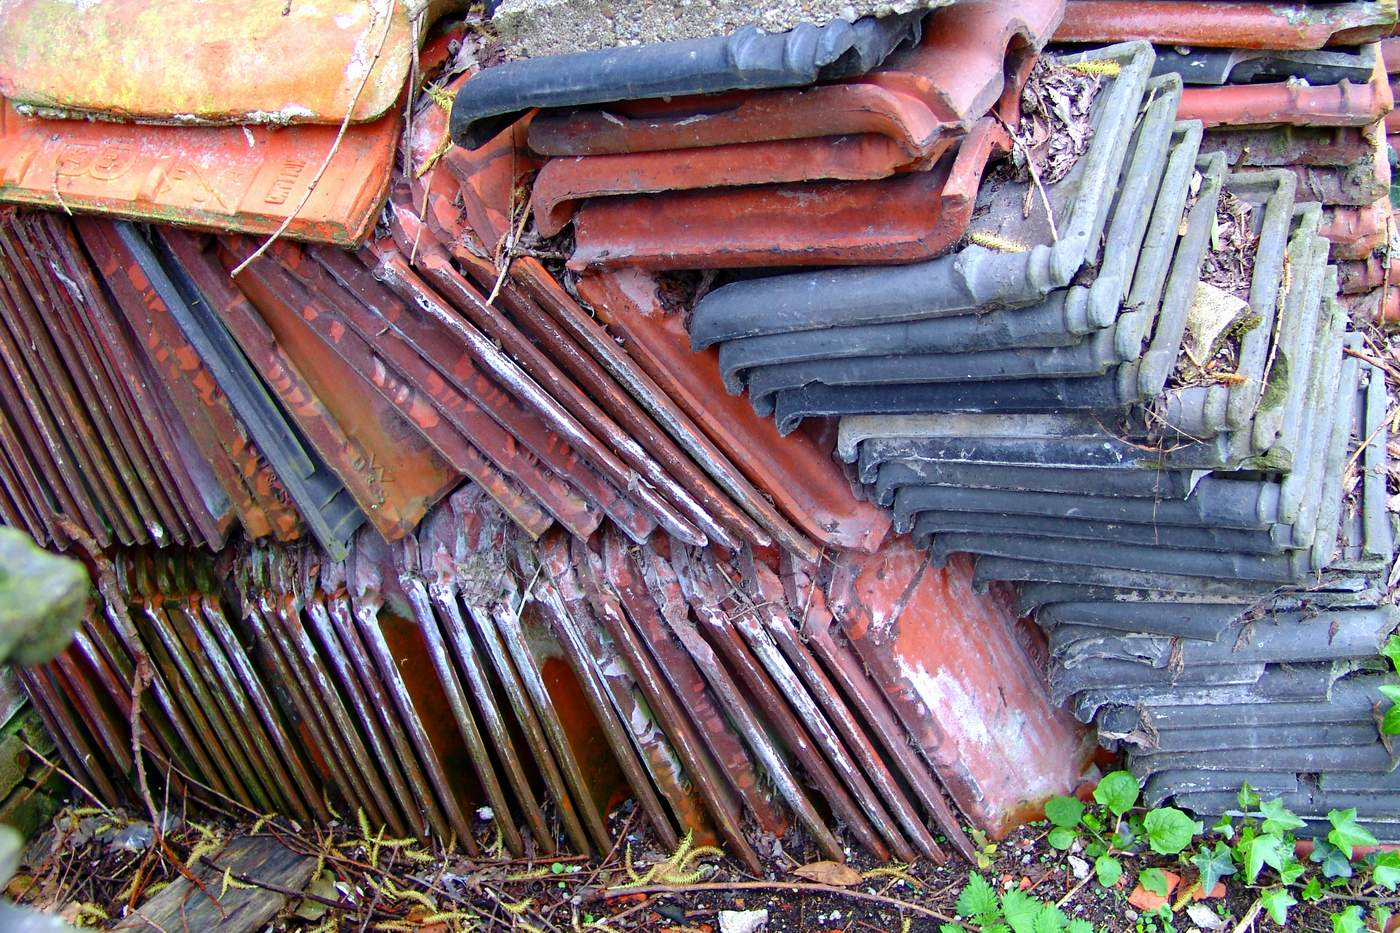 A chaotic pile of coloured roofing-tiles